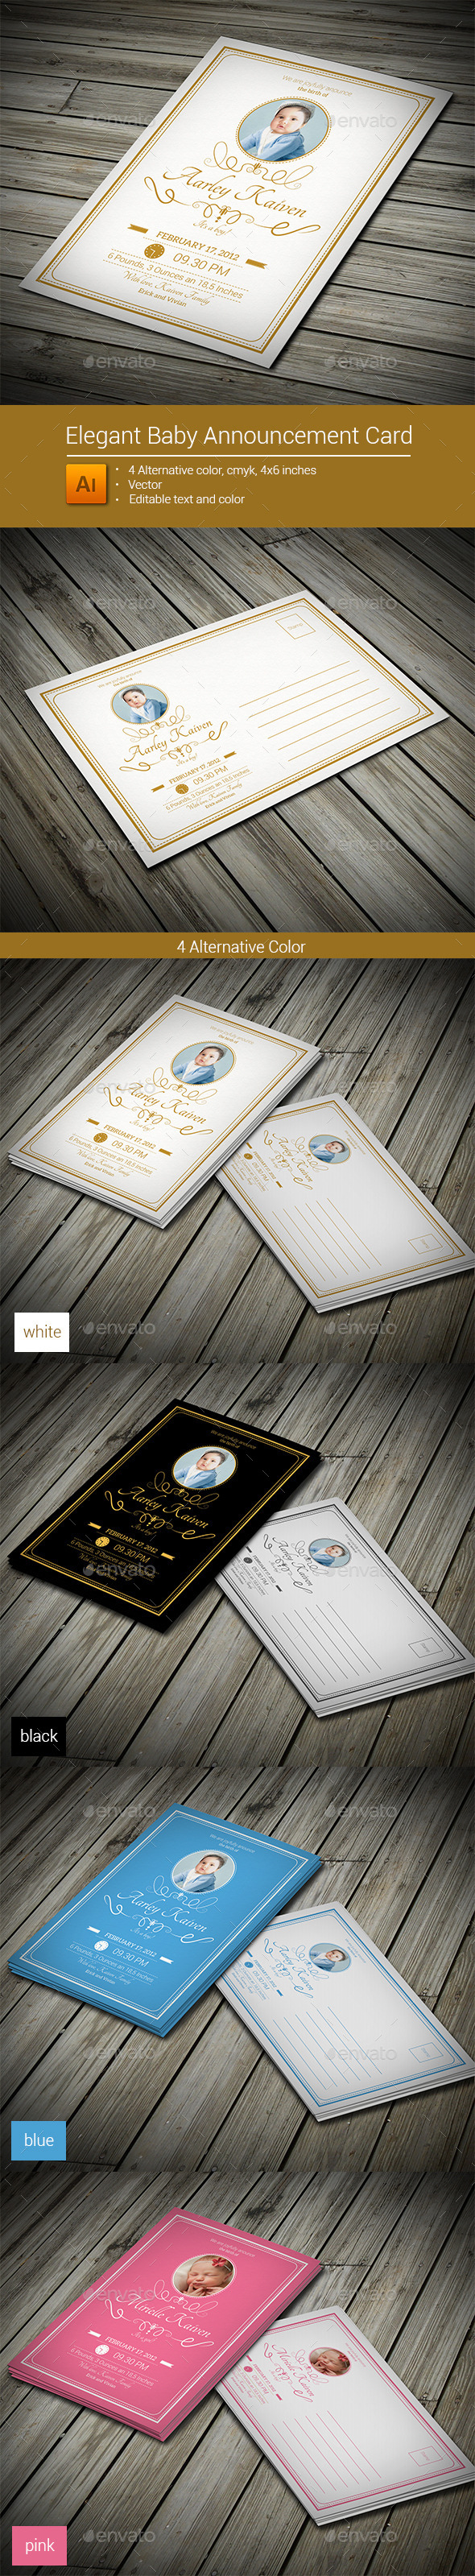 Elegant Baby Announcement Card - Family Cards & Invites